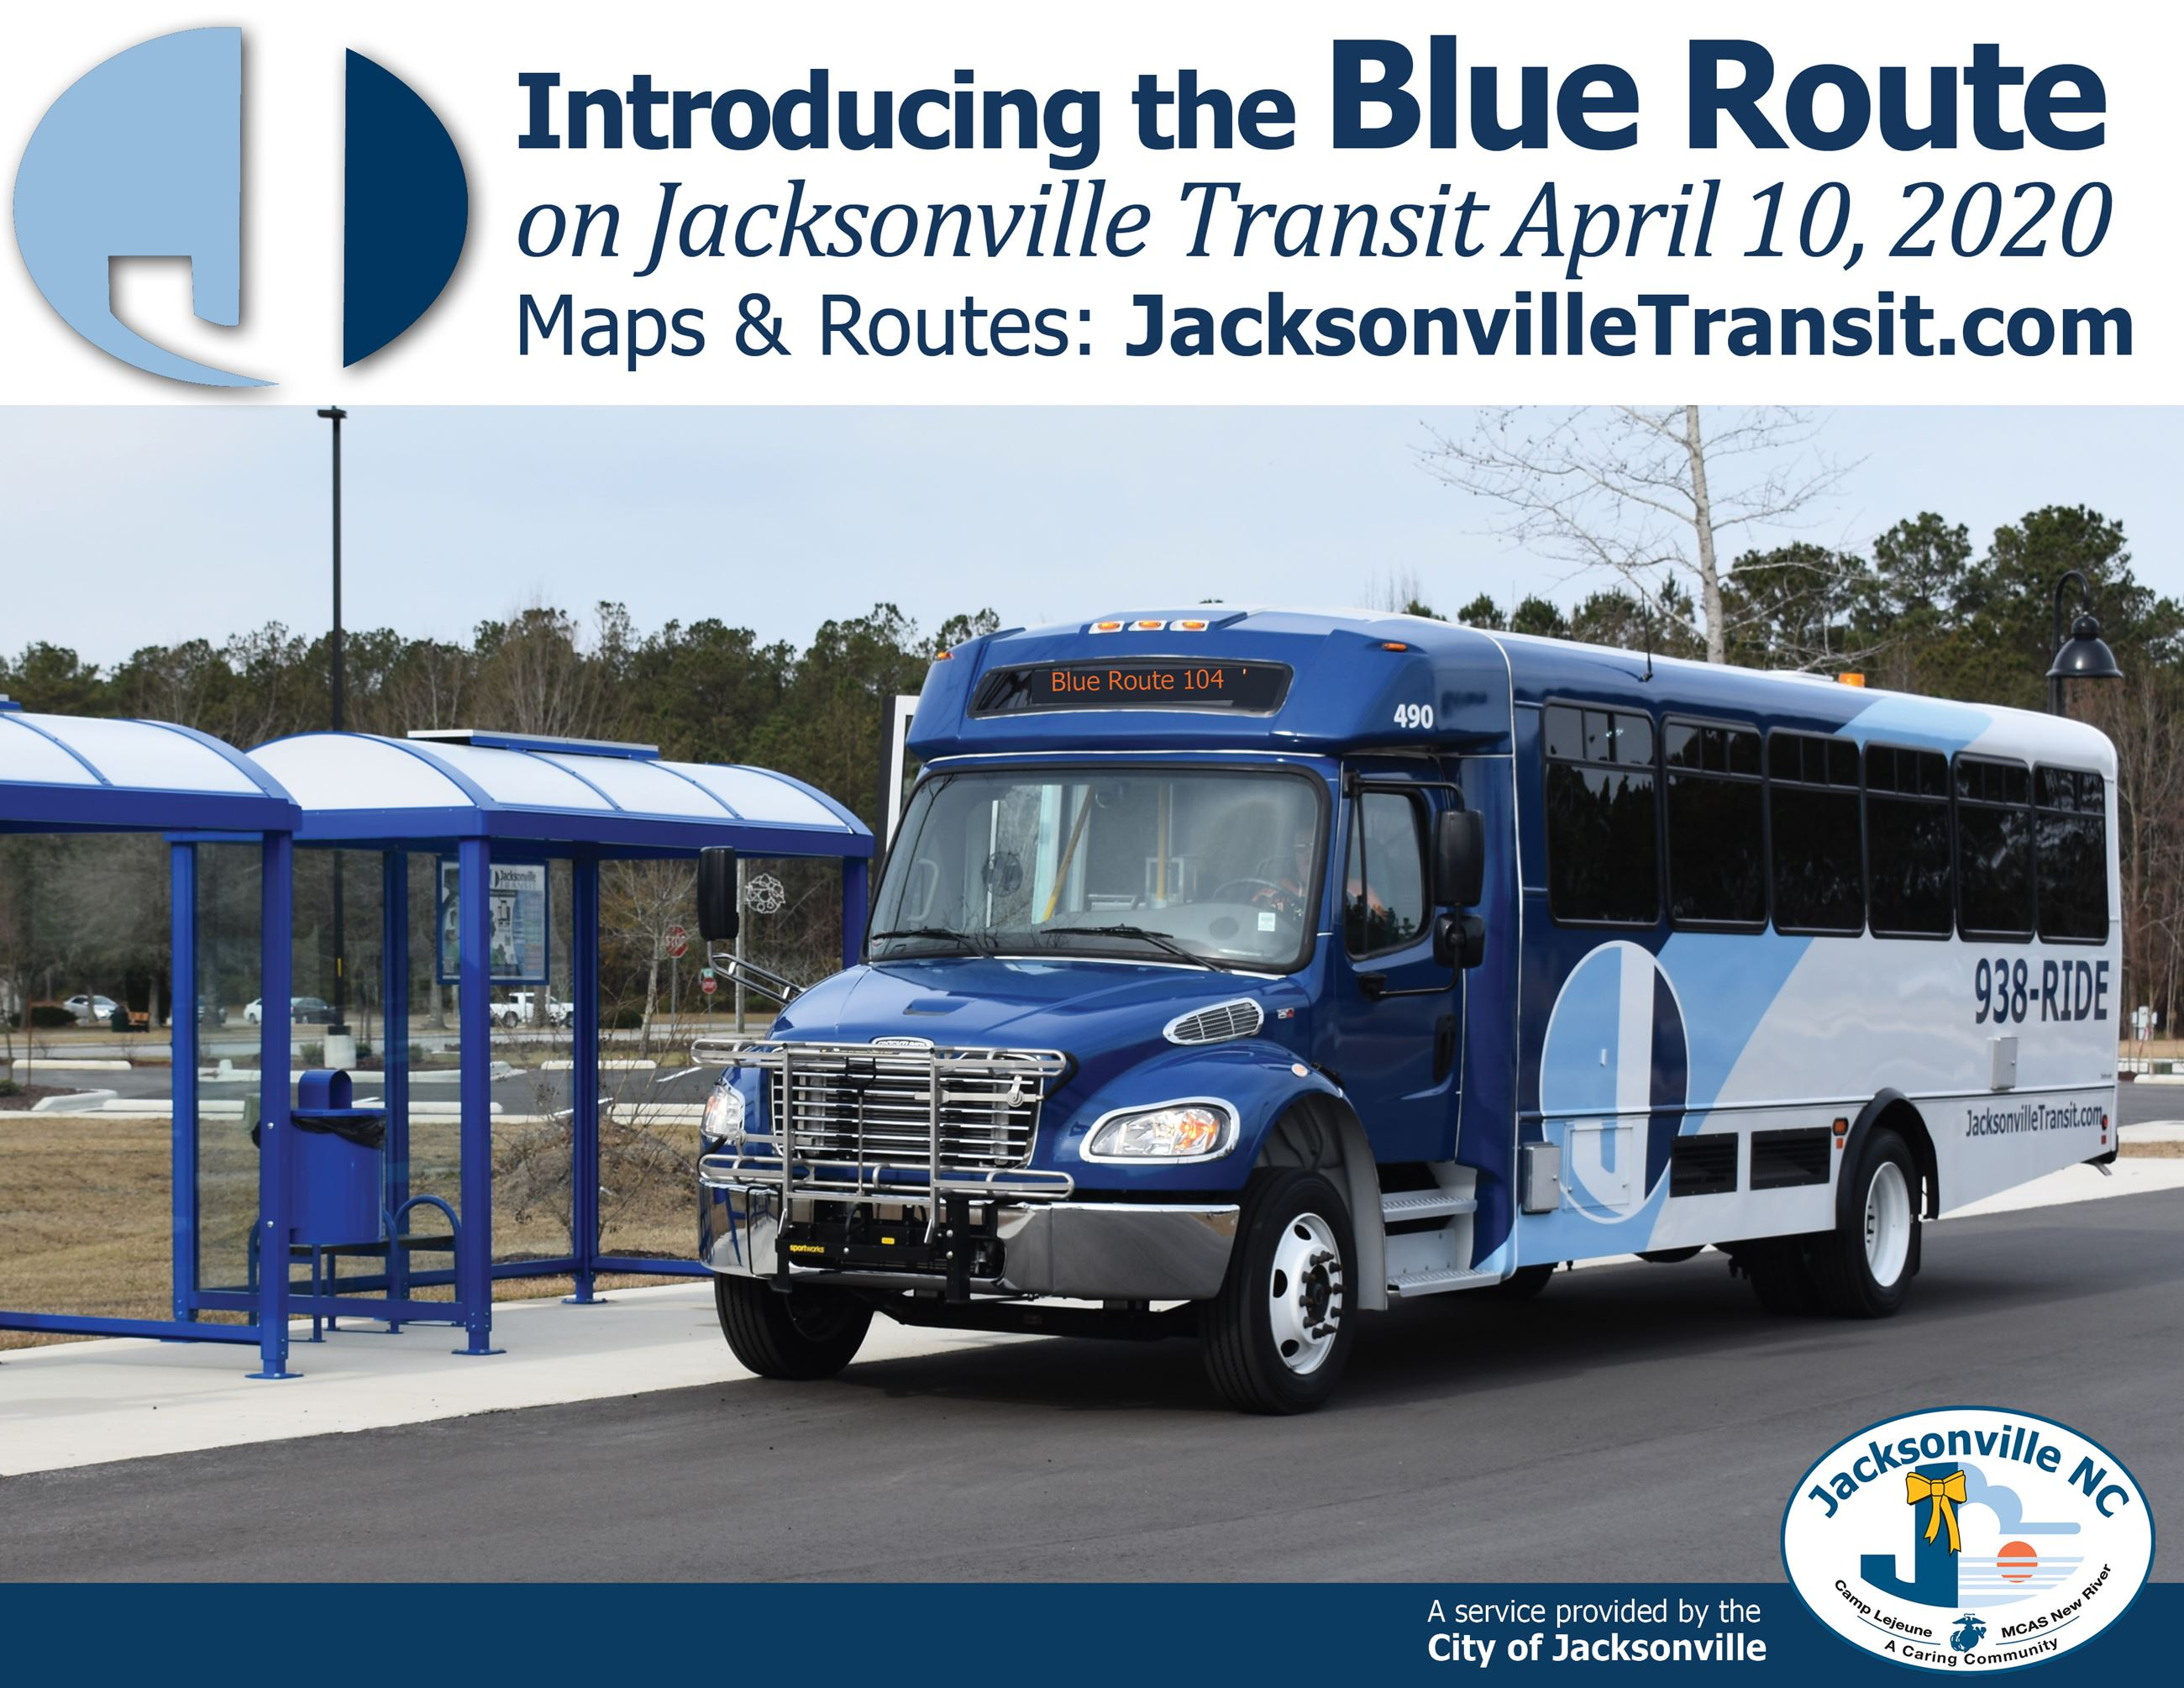 2020-New City Route - Blue 104 introduced